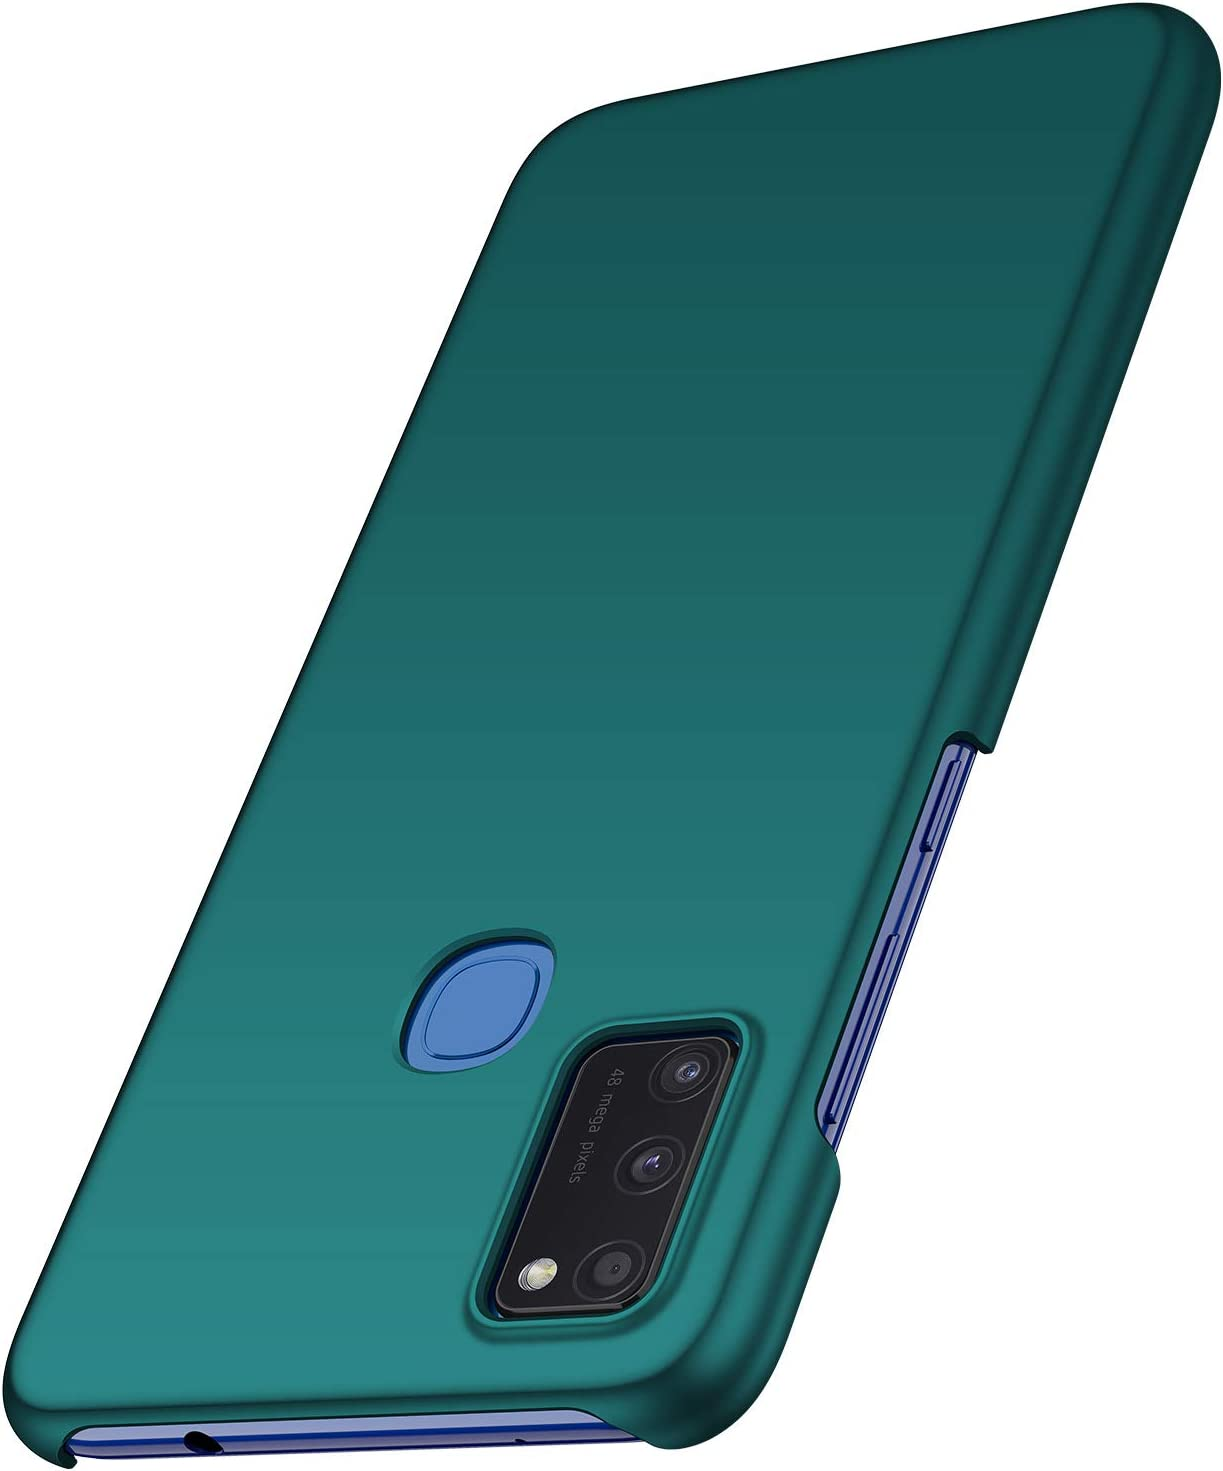 Amazon Com Anccer Compatible For Samsung Galaxy M51 Case Ultra Thin Anti Drop Premium Material Slim Full Protection Cover For Samsung M51 Green Electronics